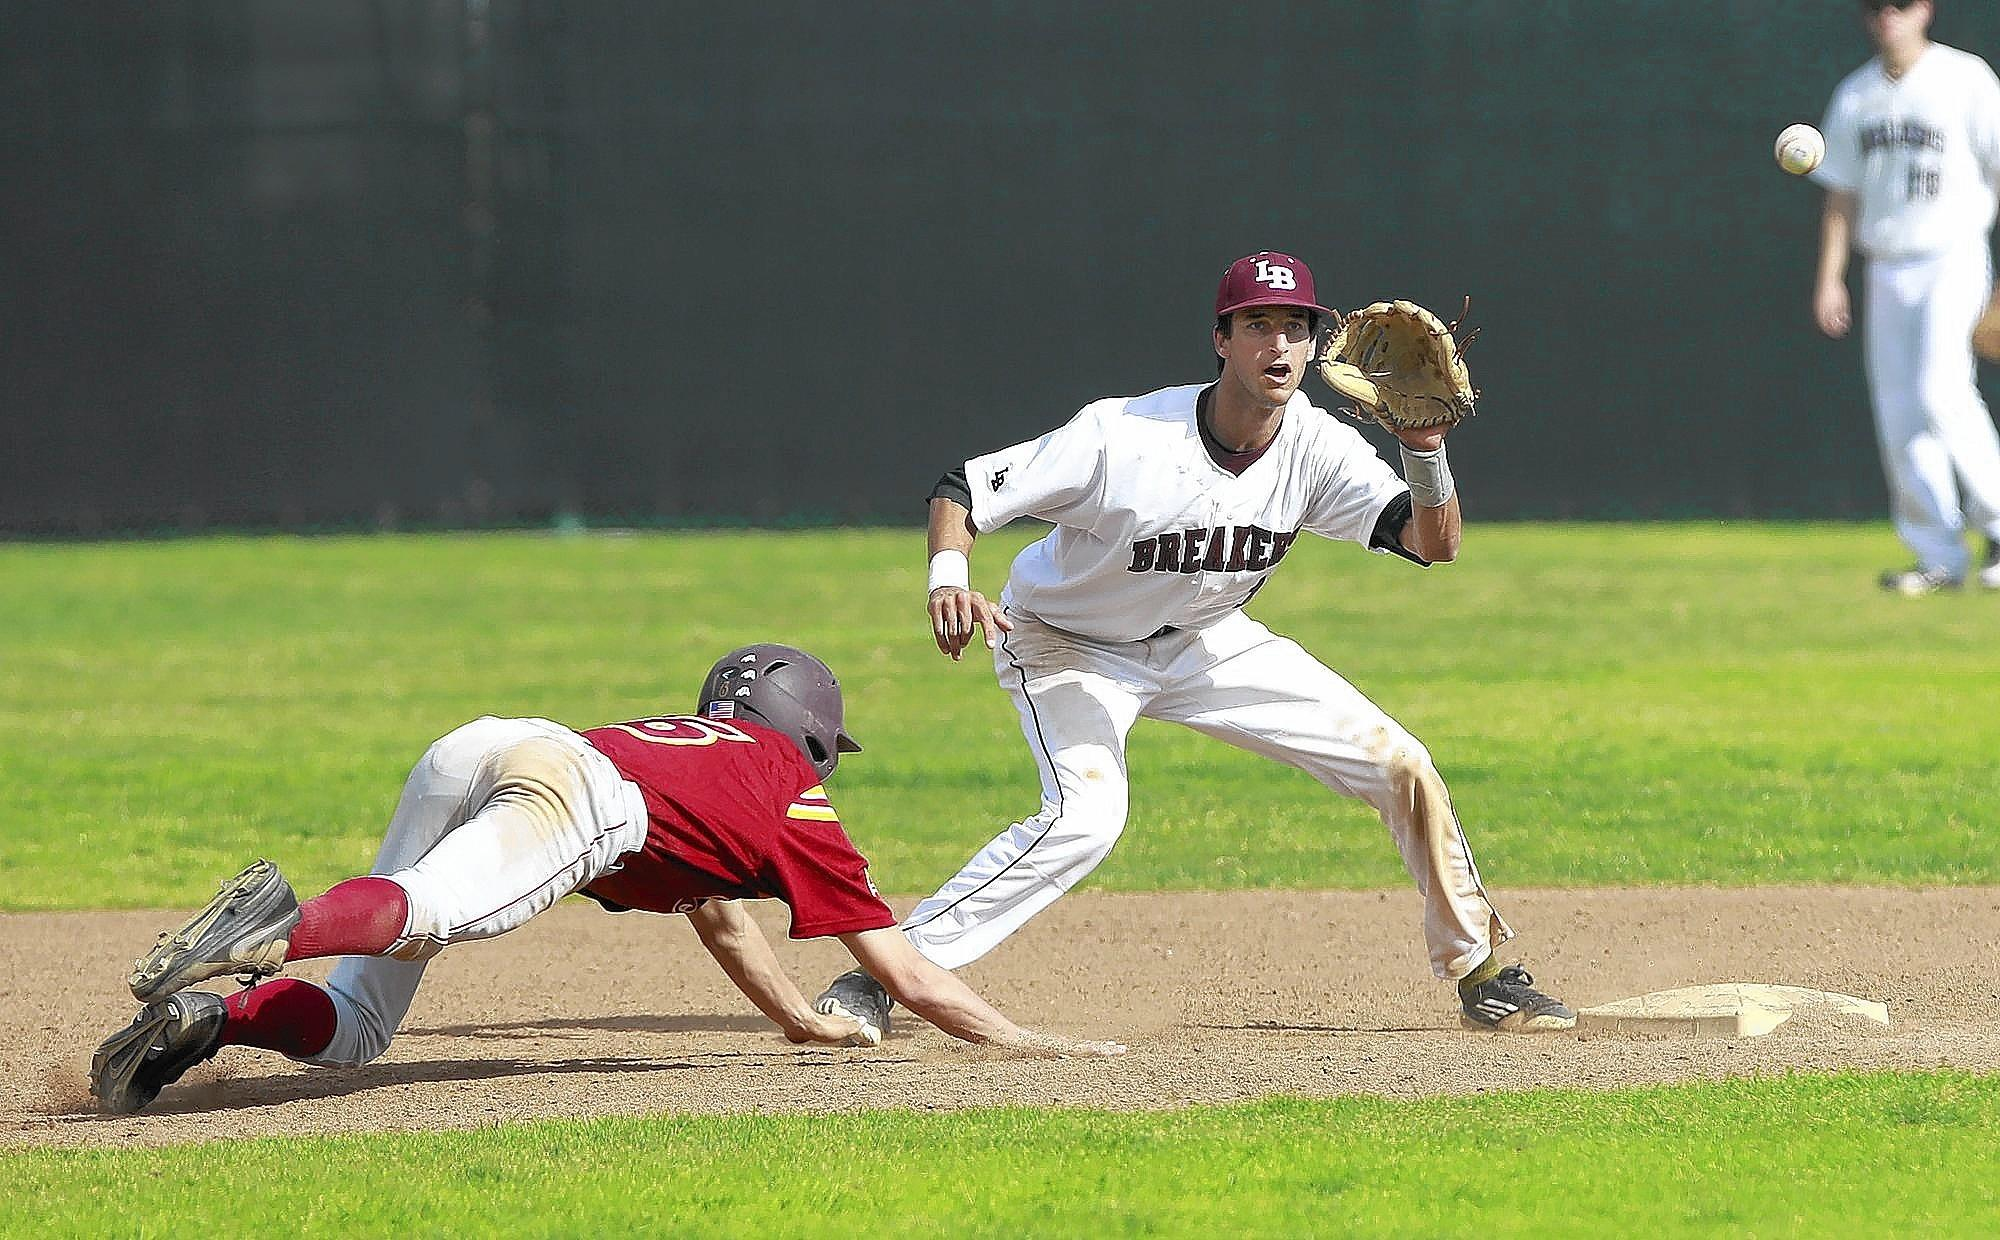 Laguna Beach High shortstop Preston Grandpre prepares to gag the Ocean View baserunner out, during Tuesday's game at Laguna Beach High.